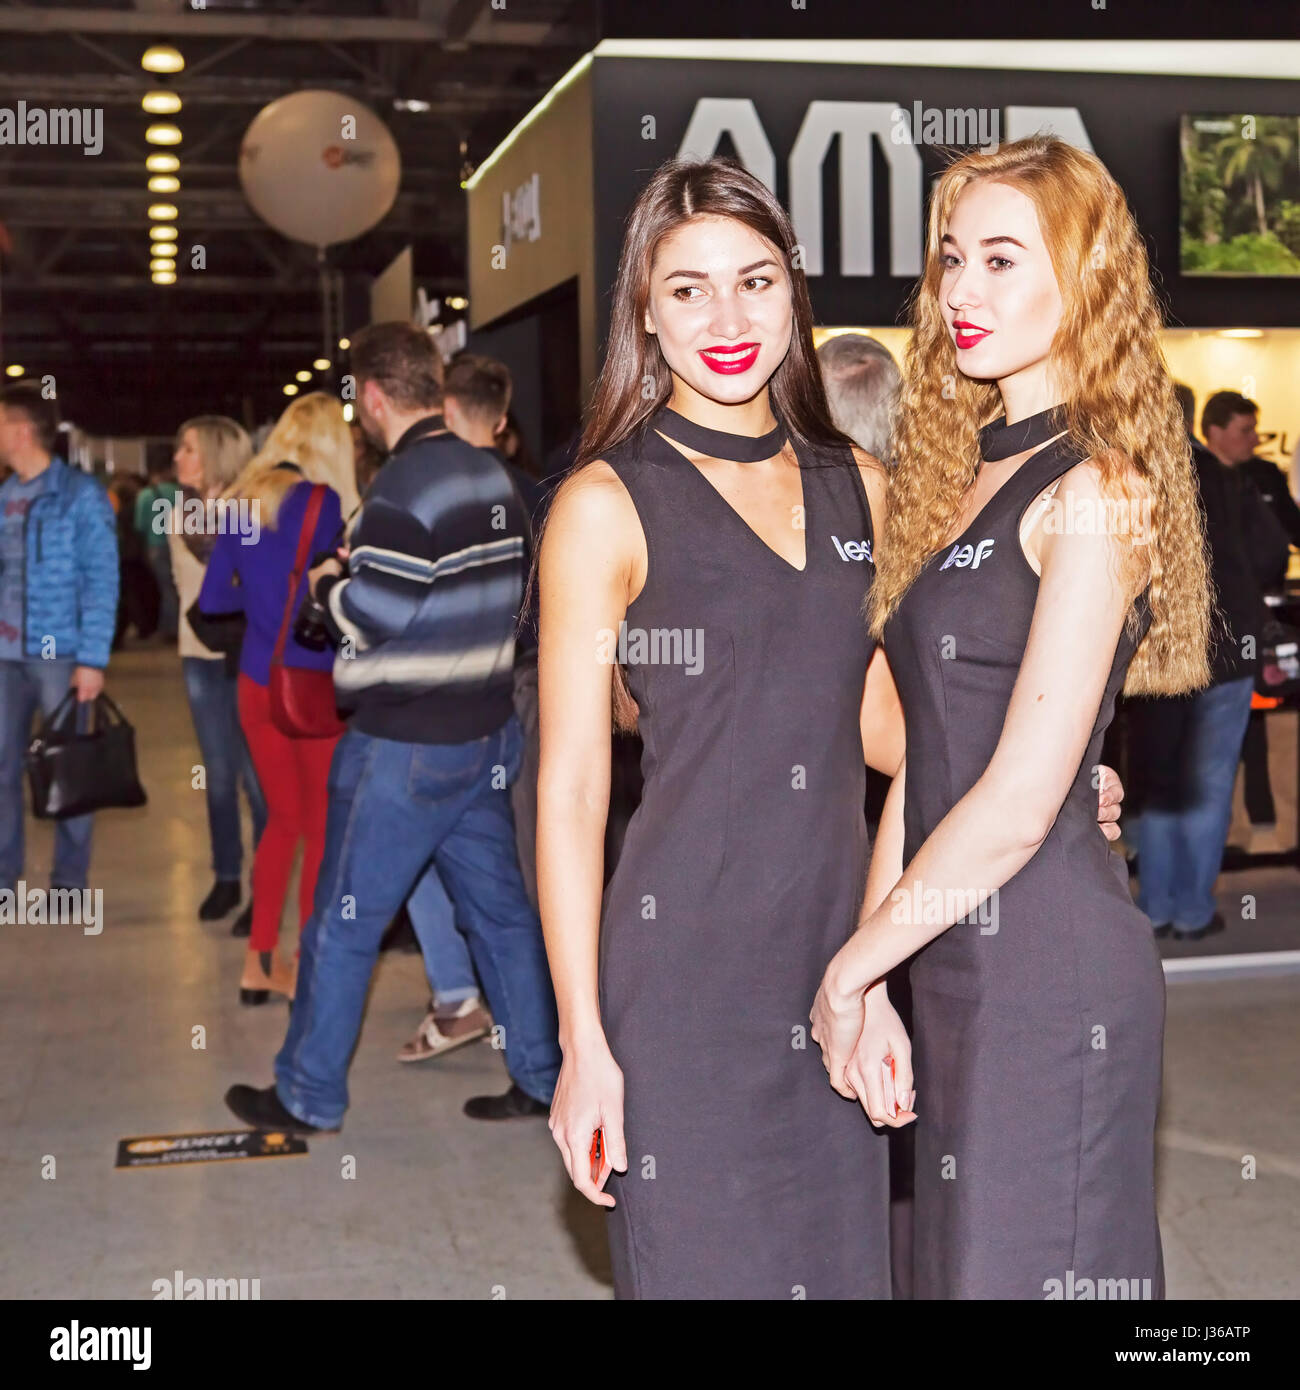 Moscow, Russian Federation - April 22, 2017:  Two representative models  at photofurum trade show and exhibition - Stock Image